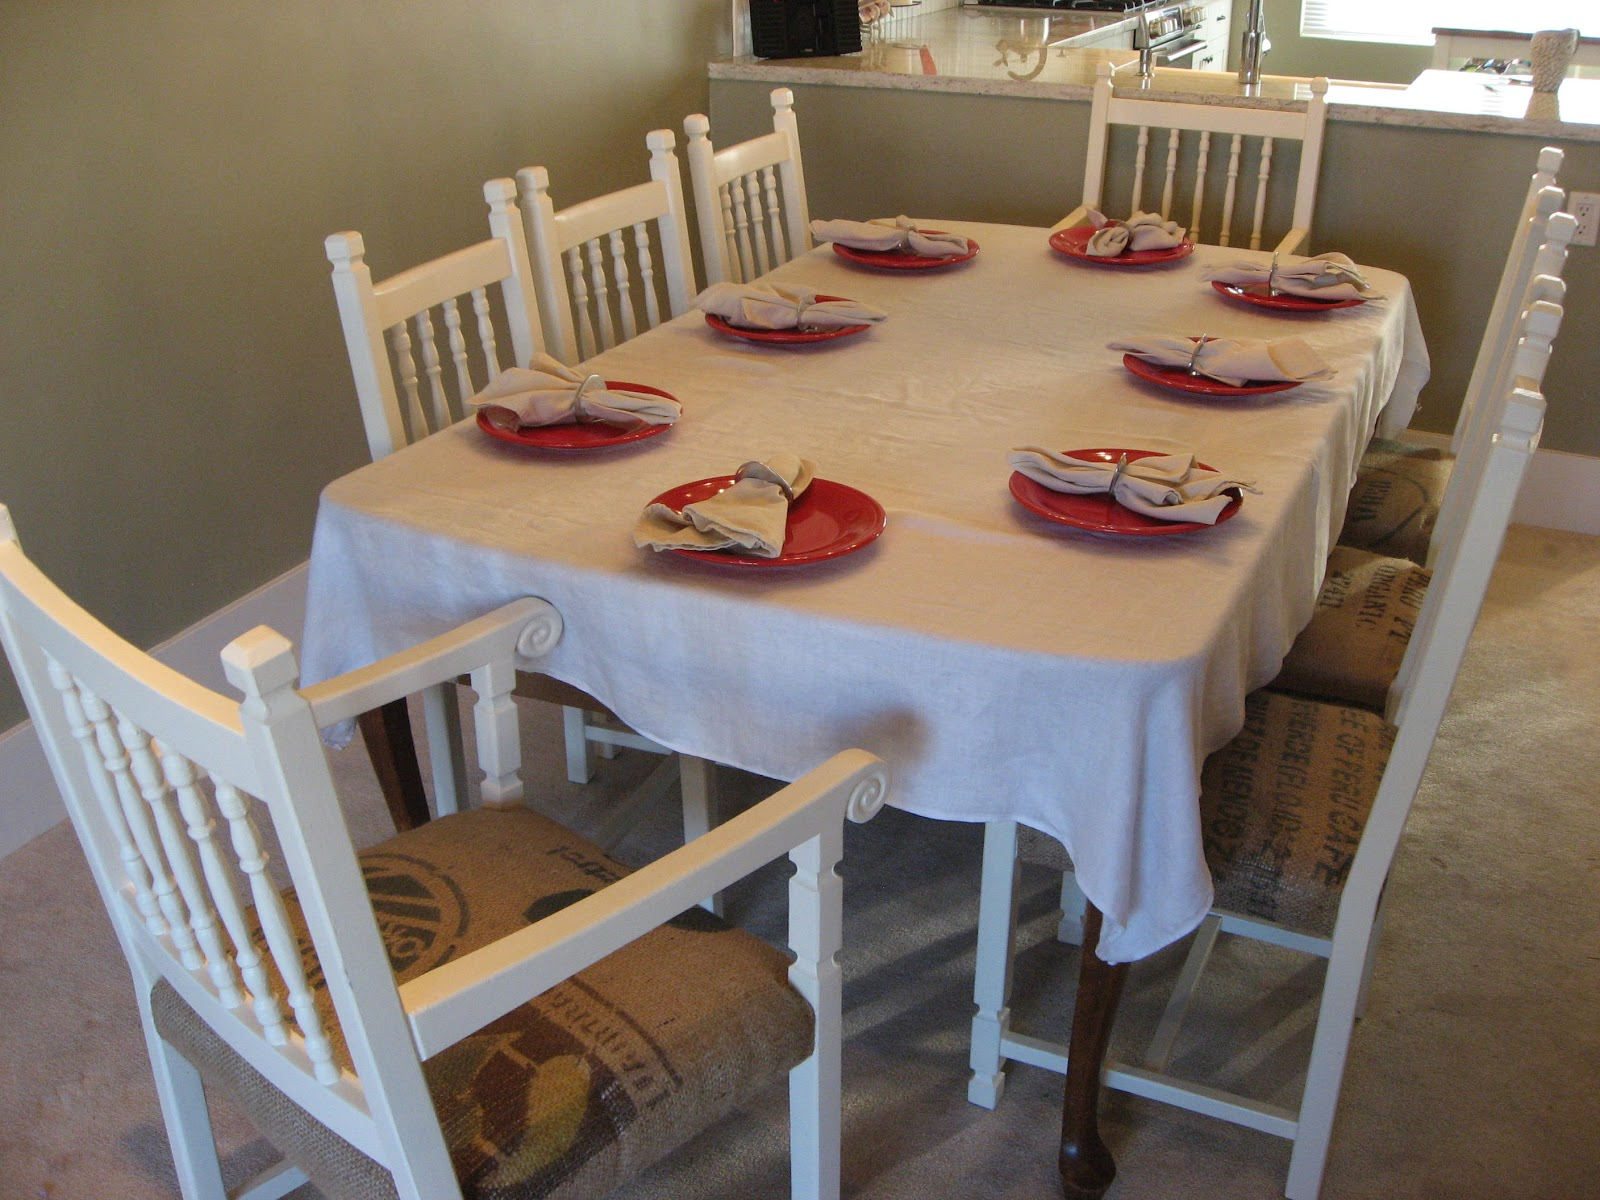 Burlap Dining Chairs Heather 39s Creations Dining Chairs Upholstered With Burlap